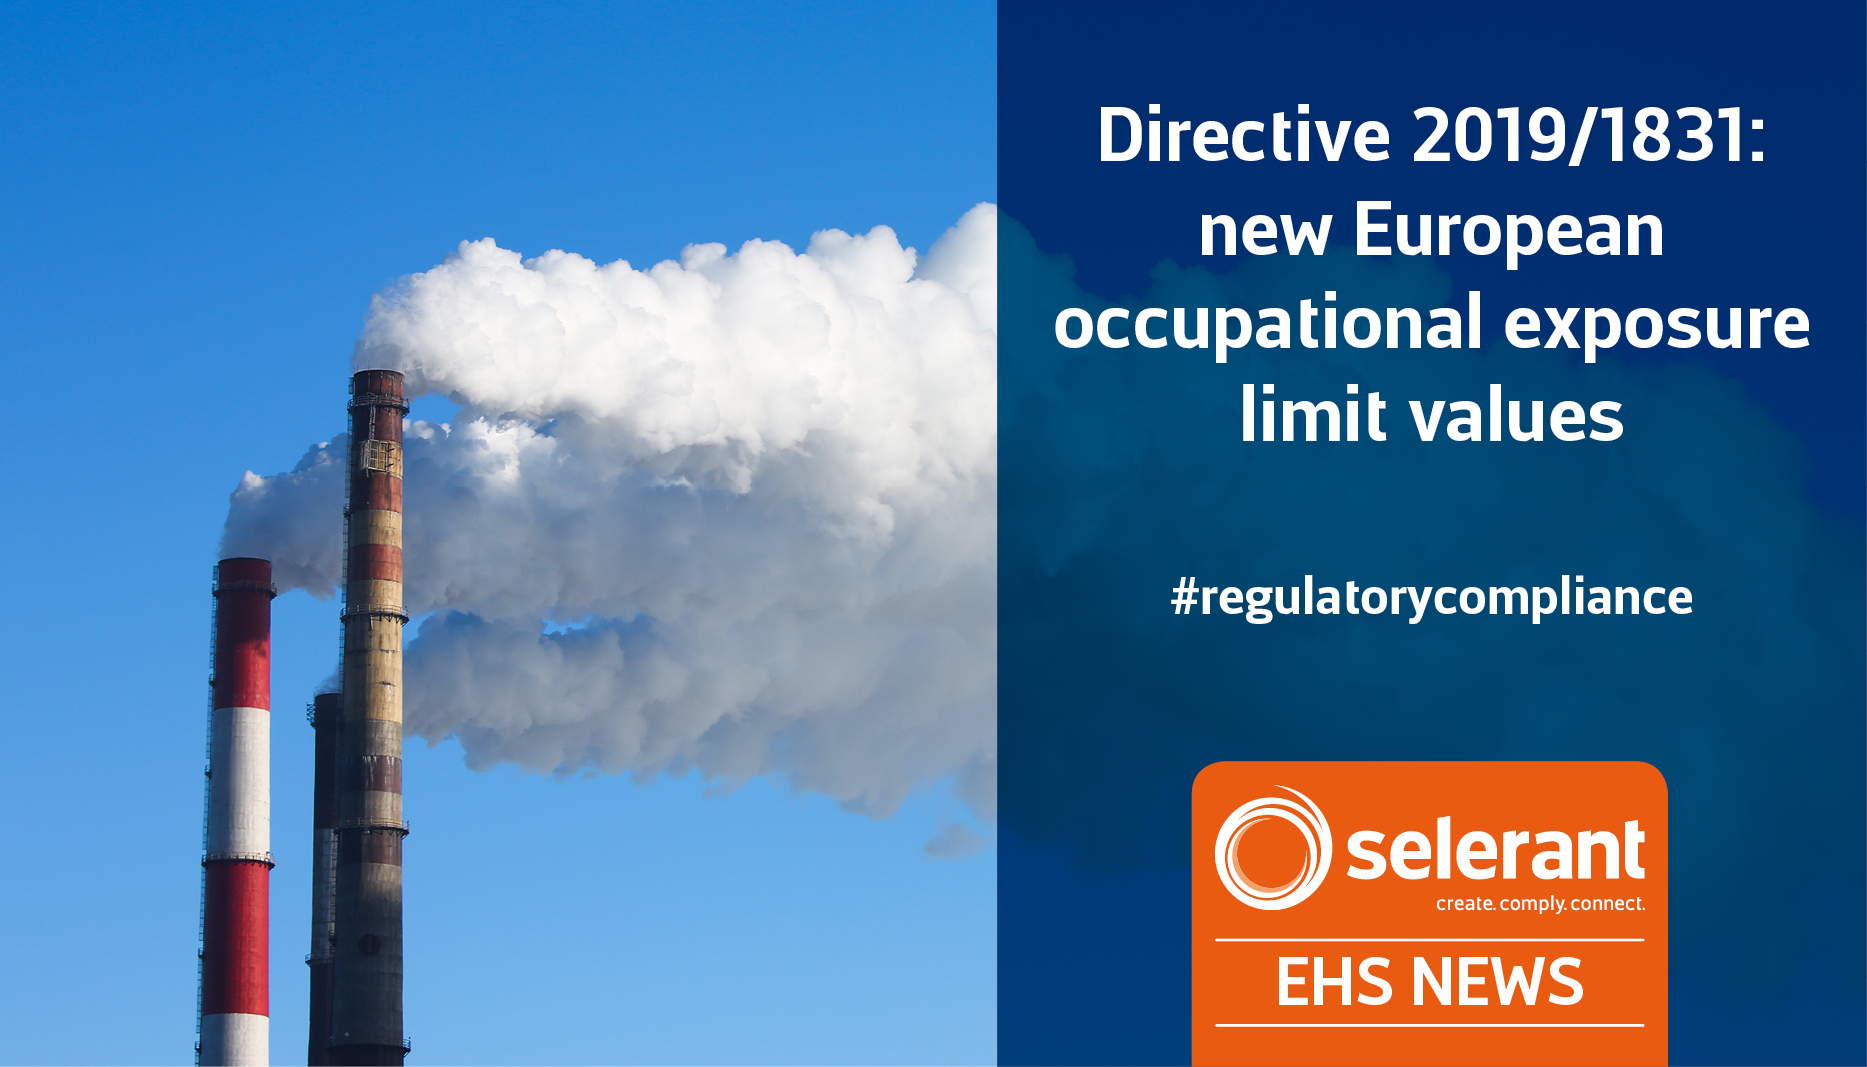 Directive 2019/1831: new European occupational exposure limit values